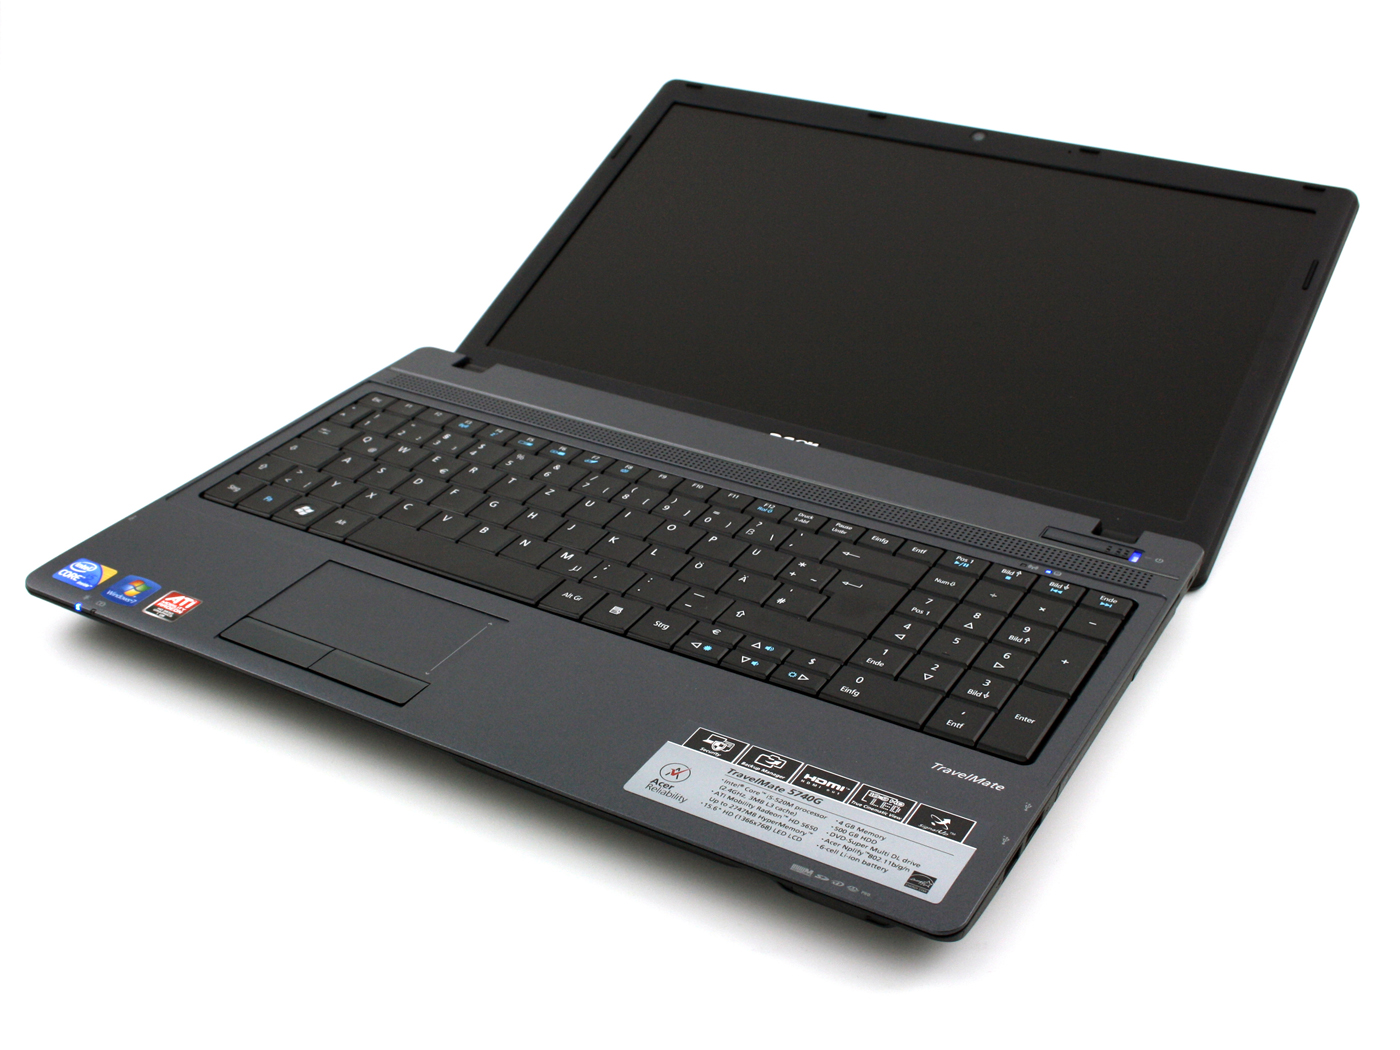 Acer TravelMate 5740 Series - Notebookcheck.net External ...